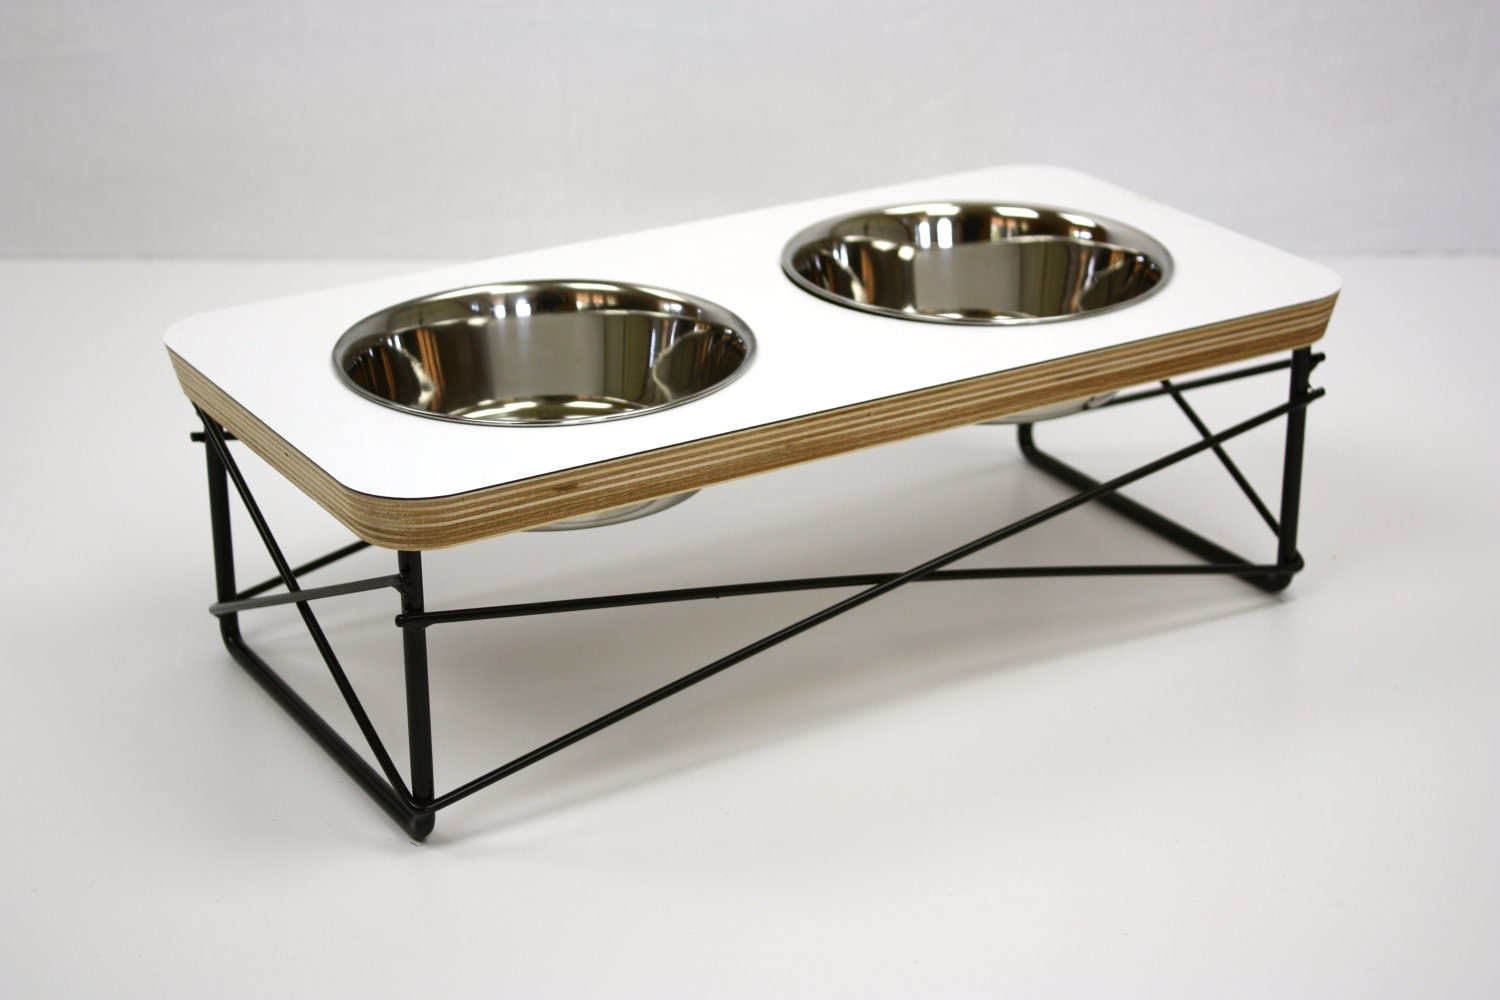 modern pet feeder dog bowl or cat bowl elevated feeder mid - modern pet feeder  dog bowl or cat bowl elevated feeder mid century moderndesign eames